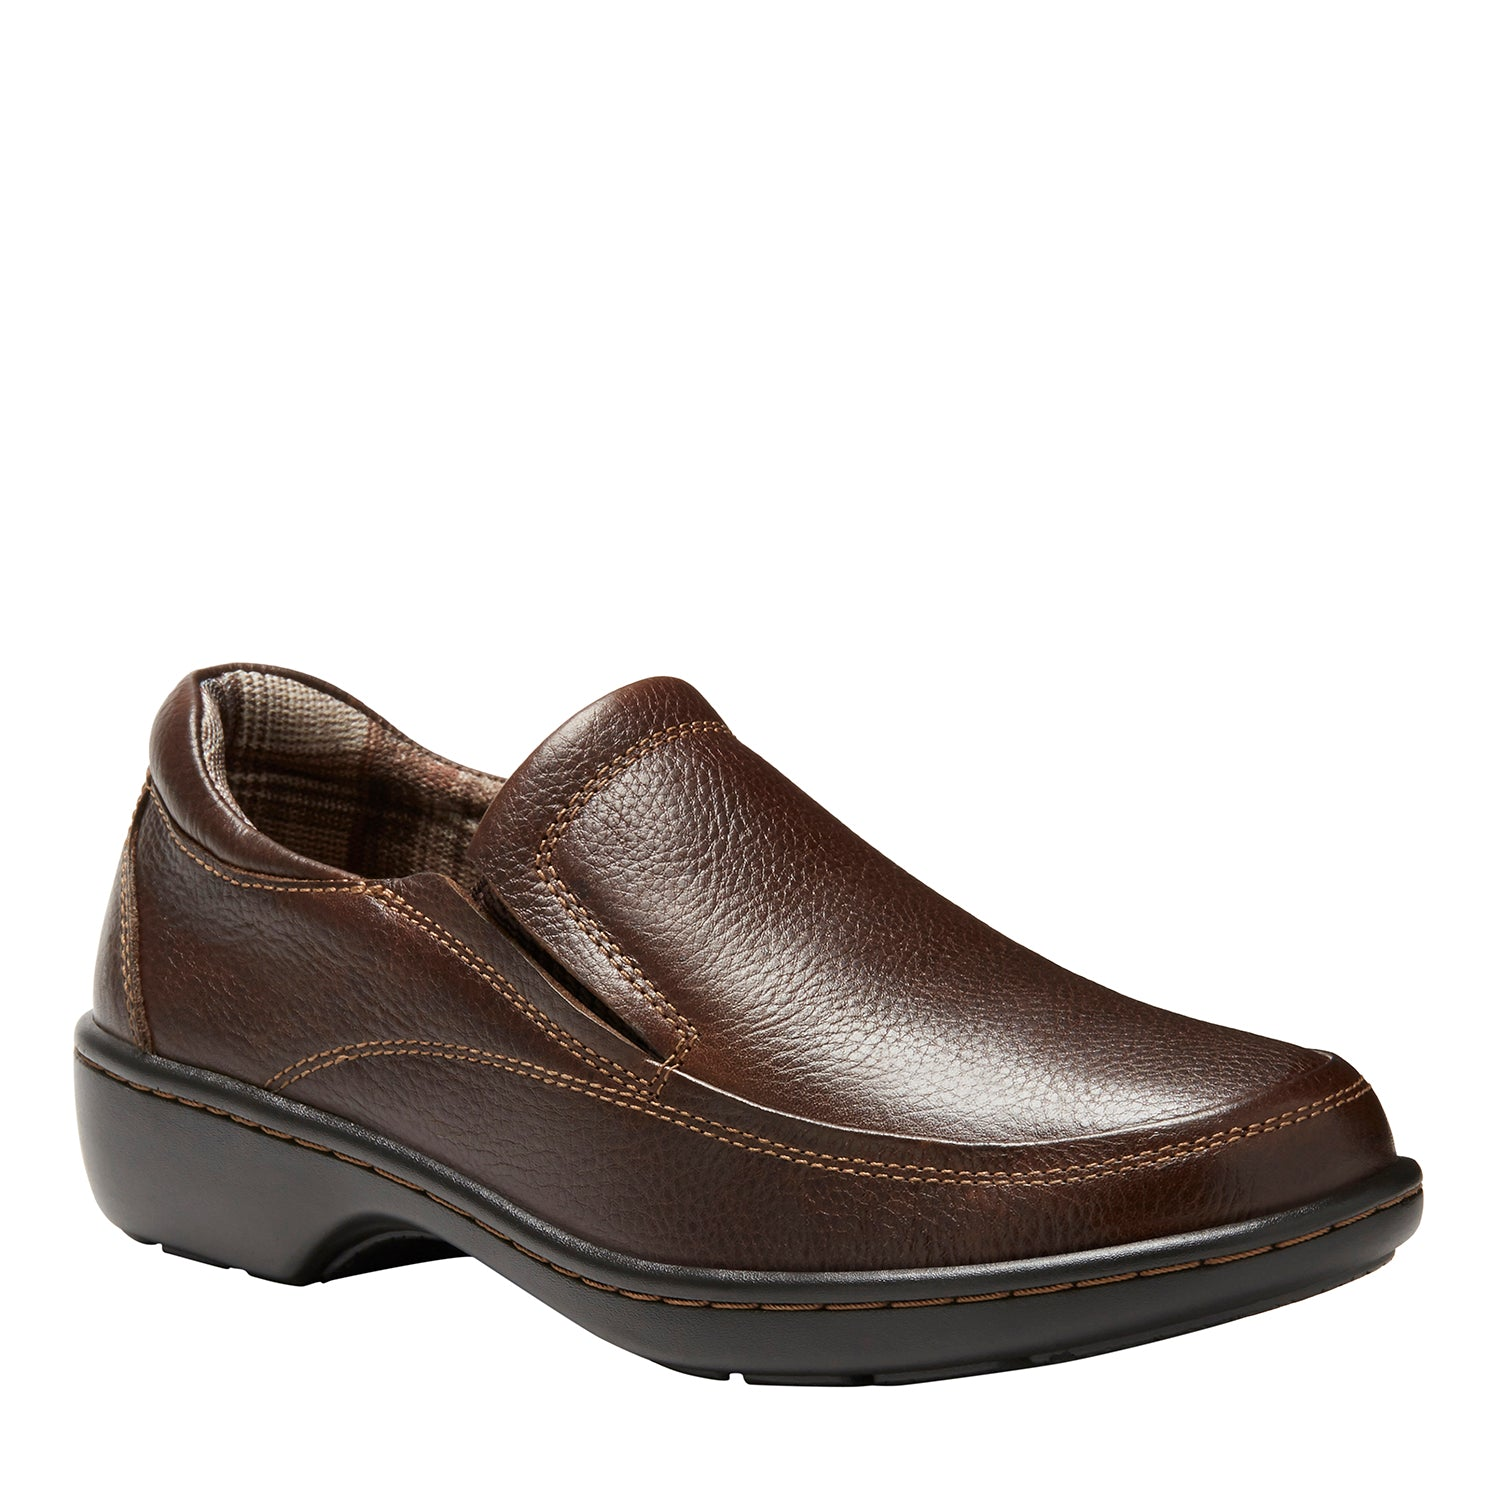 'Eastland' 3895-02 - Kaitlyn Slip On - Brown